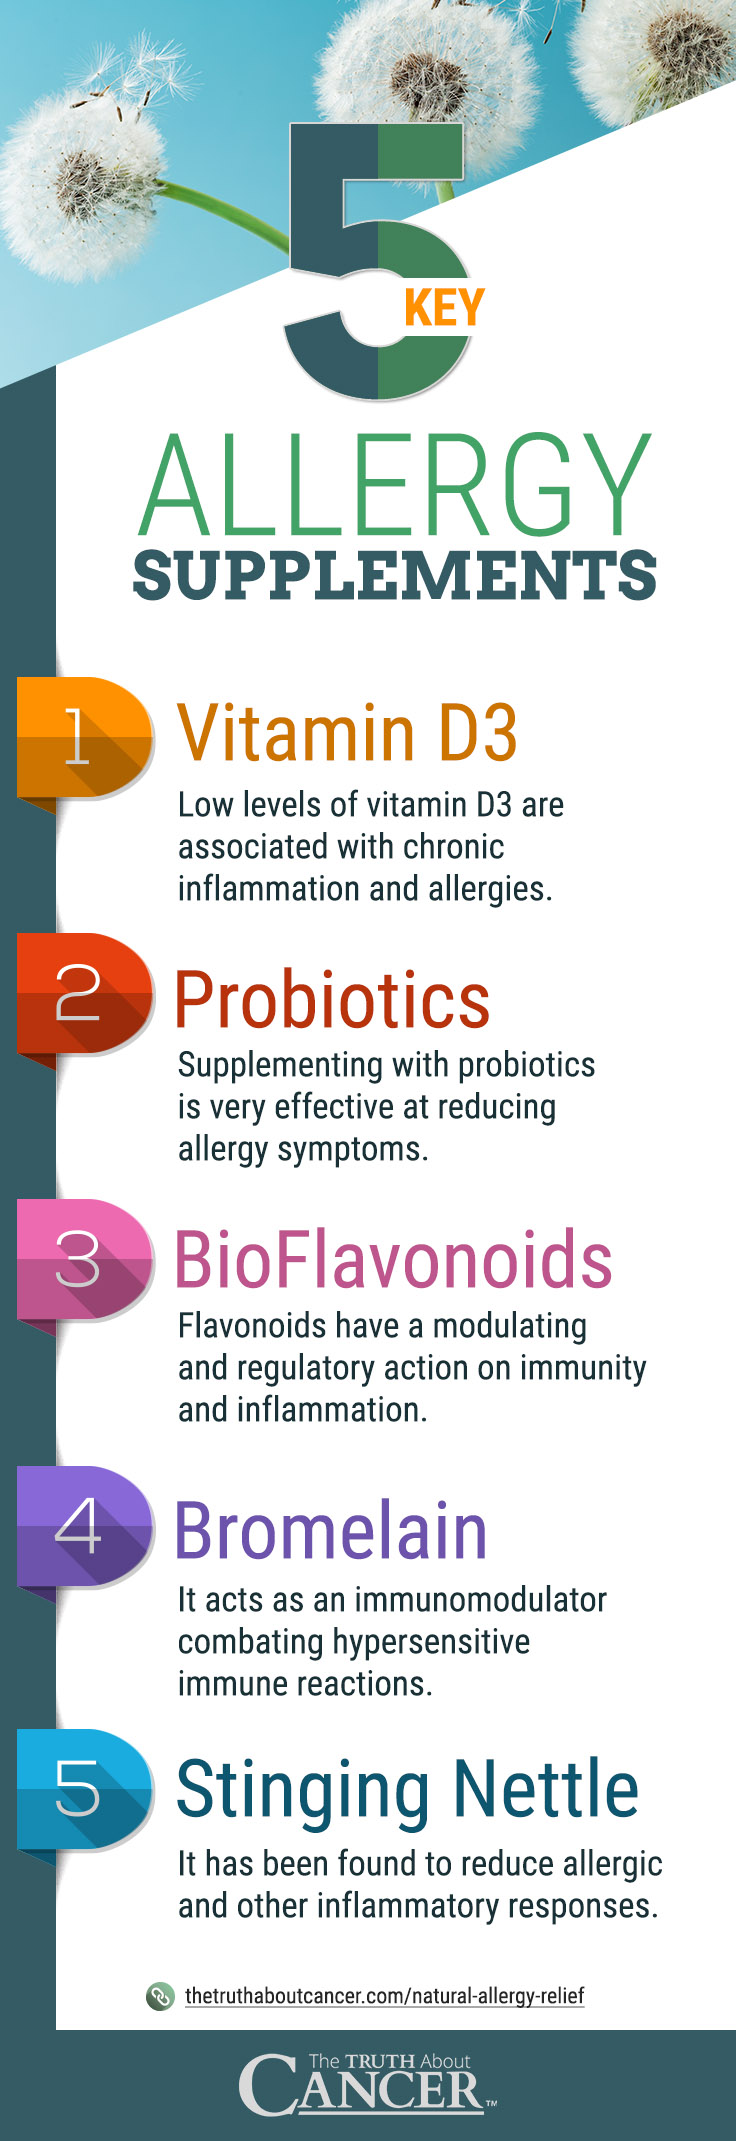 Here are 5 Key Allergy Supplements: Vitamin D3, Probiotics, BioFlavonoids, Bromelain, and Stinging Nettle.